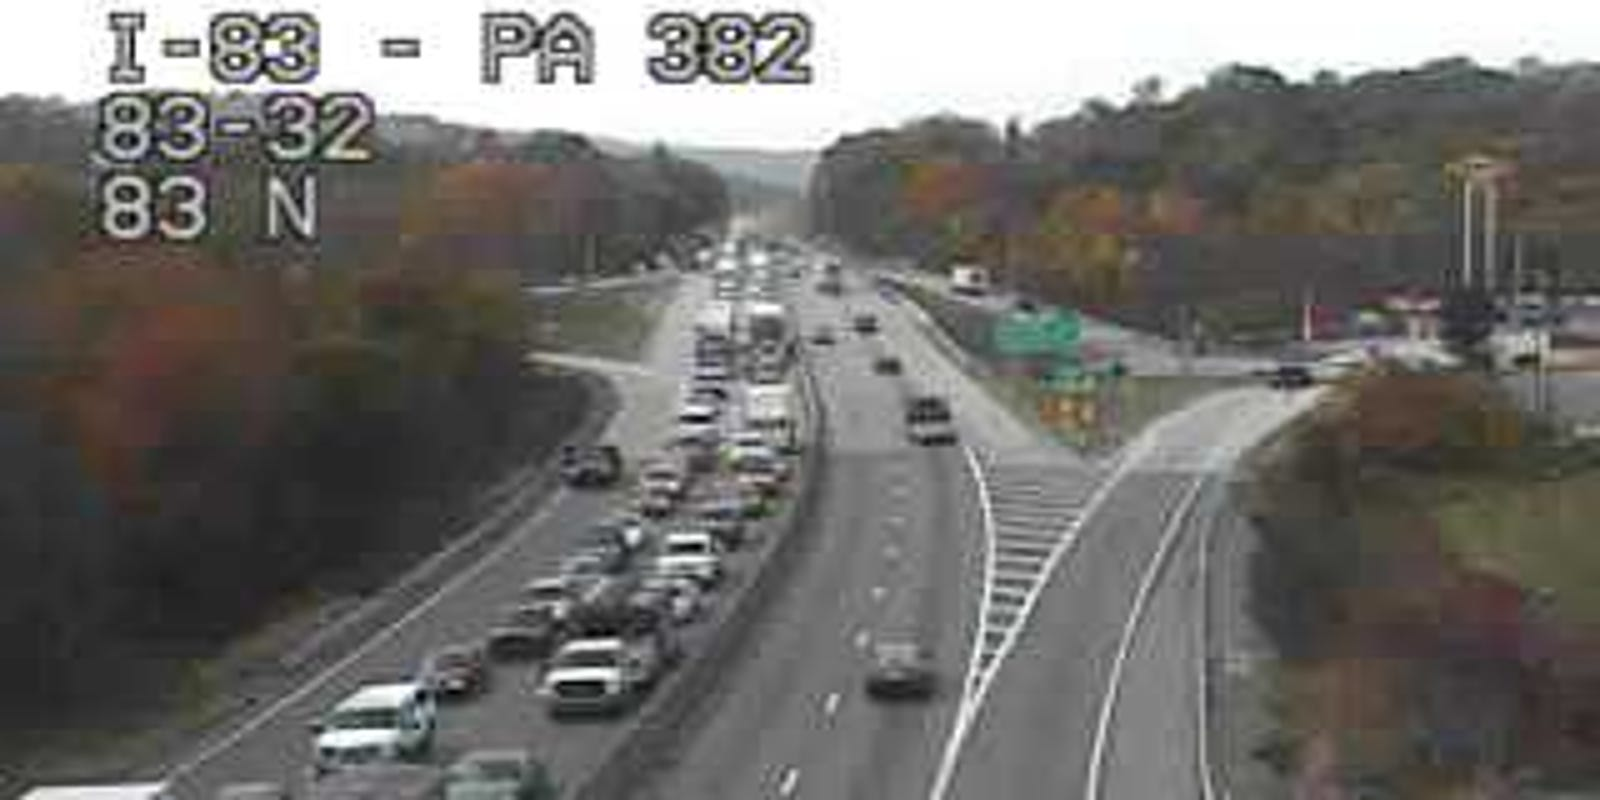 4-car crash scene now cleared on I-83 near Strinestown